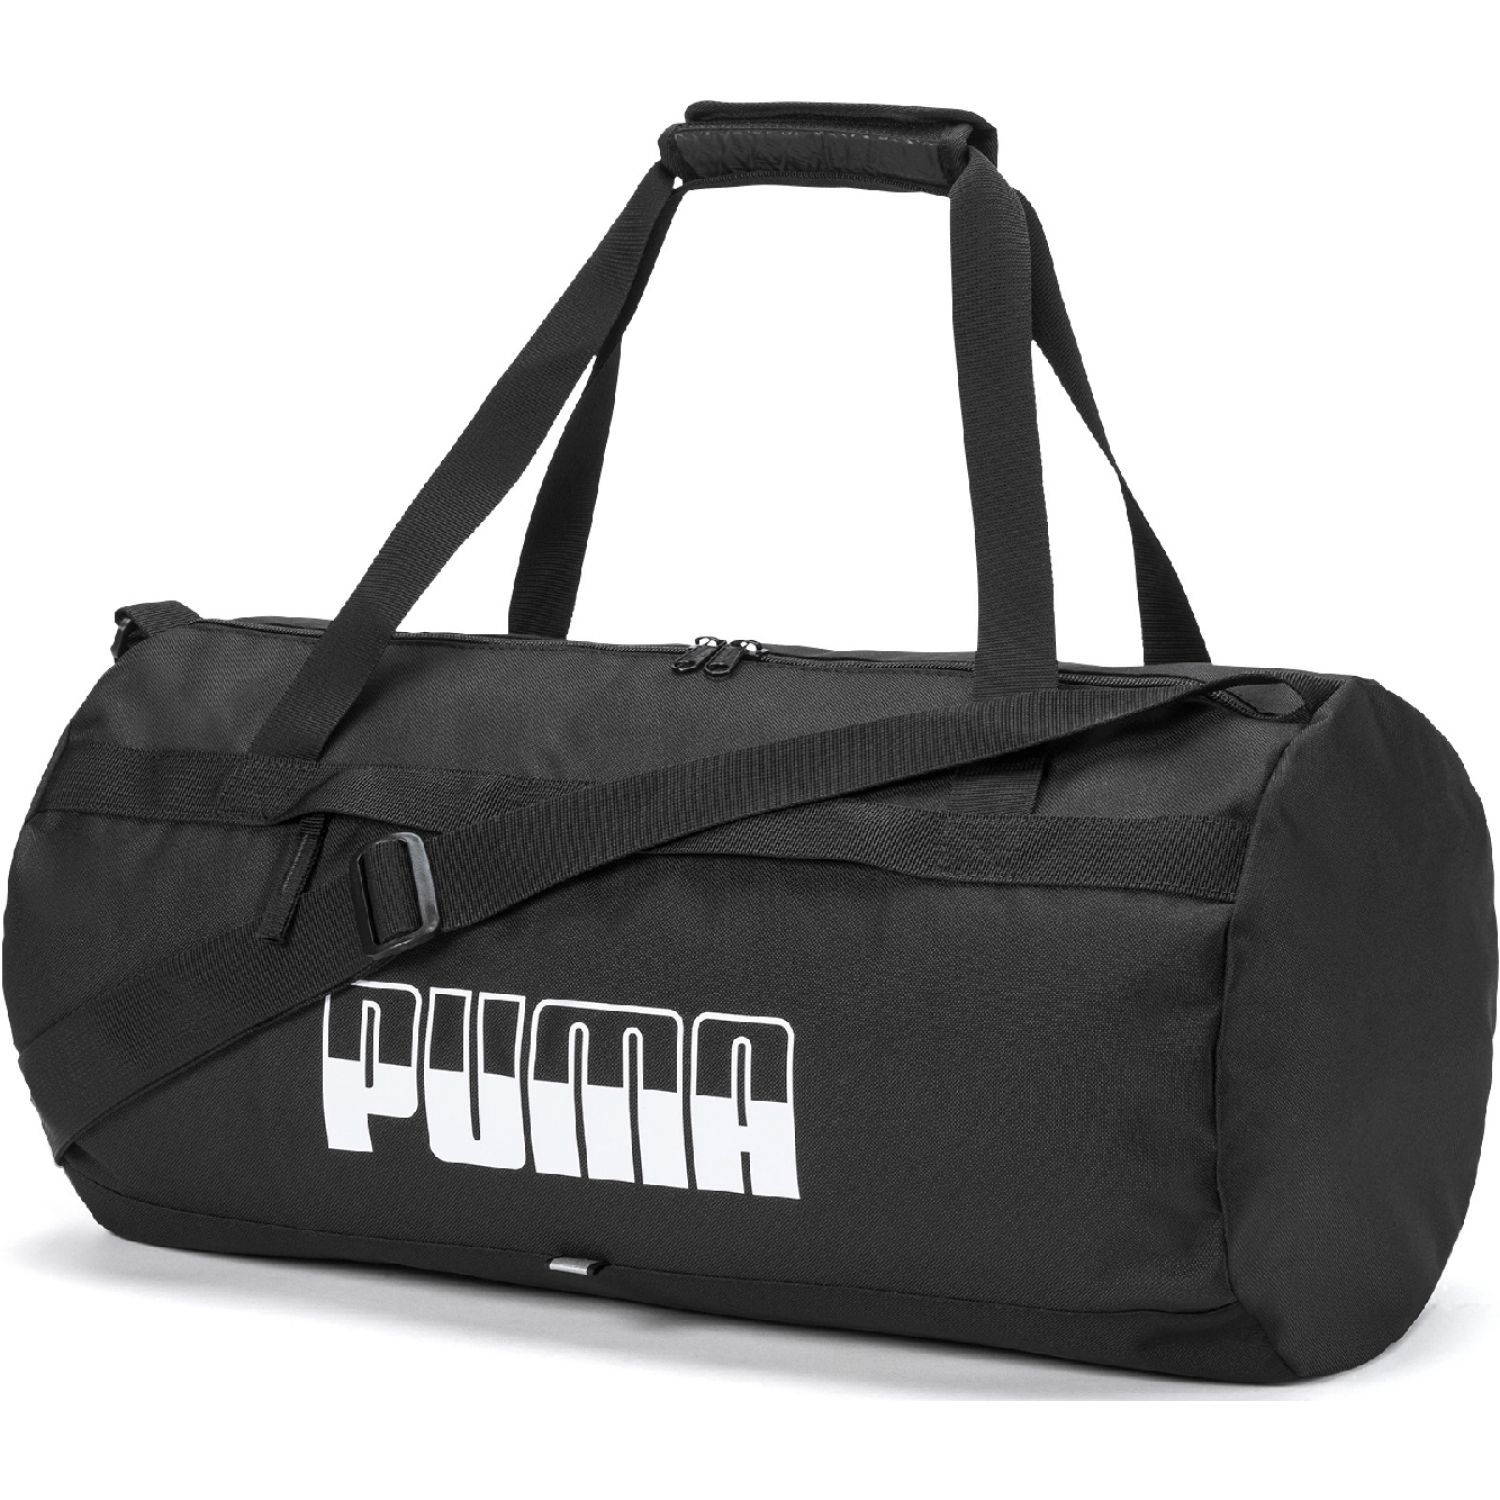 Puma Puma Plus Sports Bag Ii Negro Bolsos de gimnasio